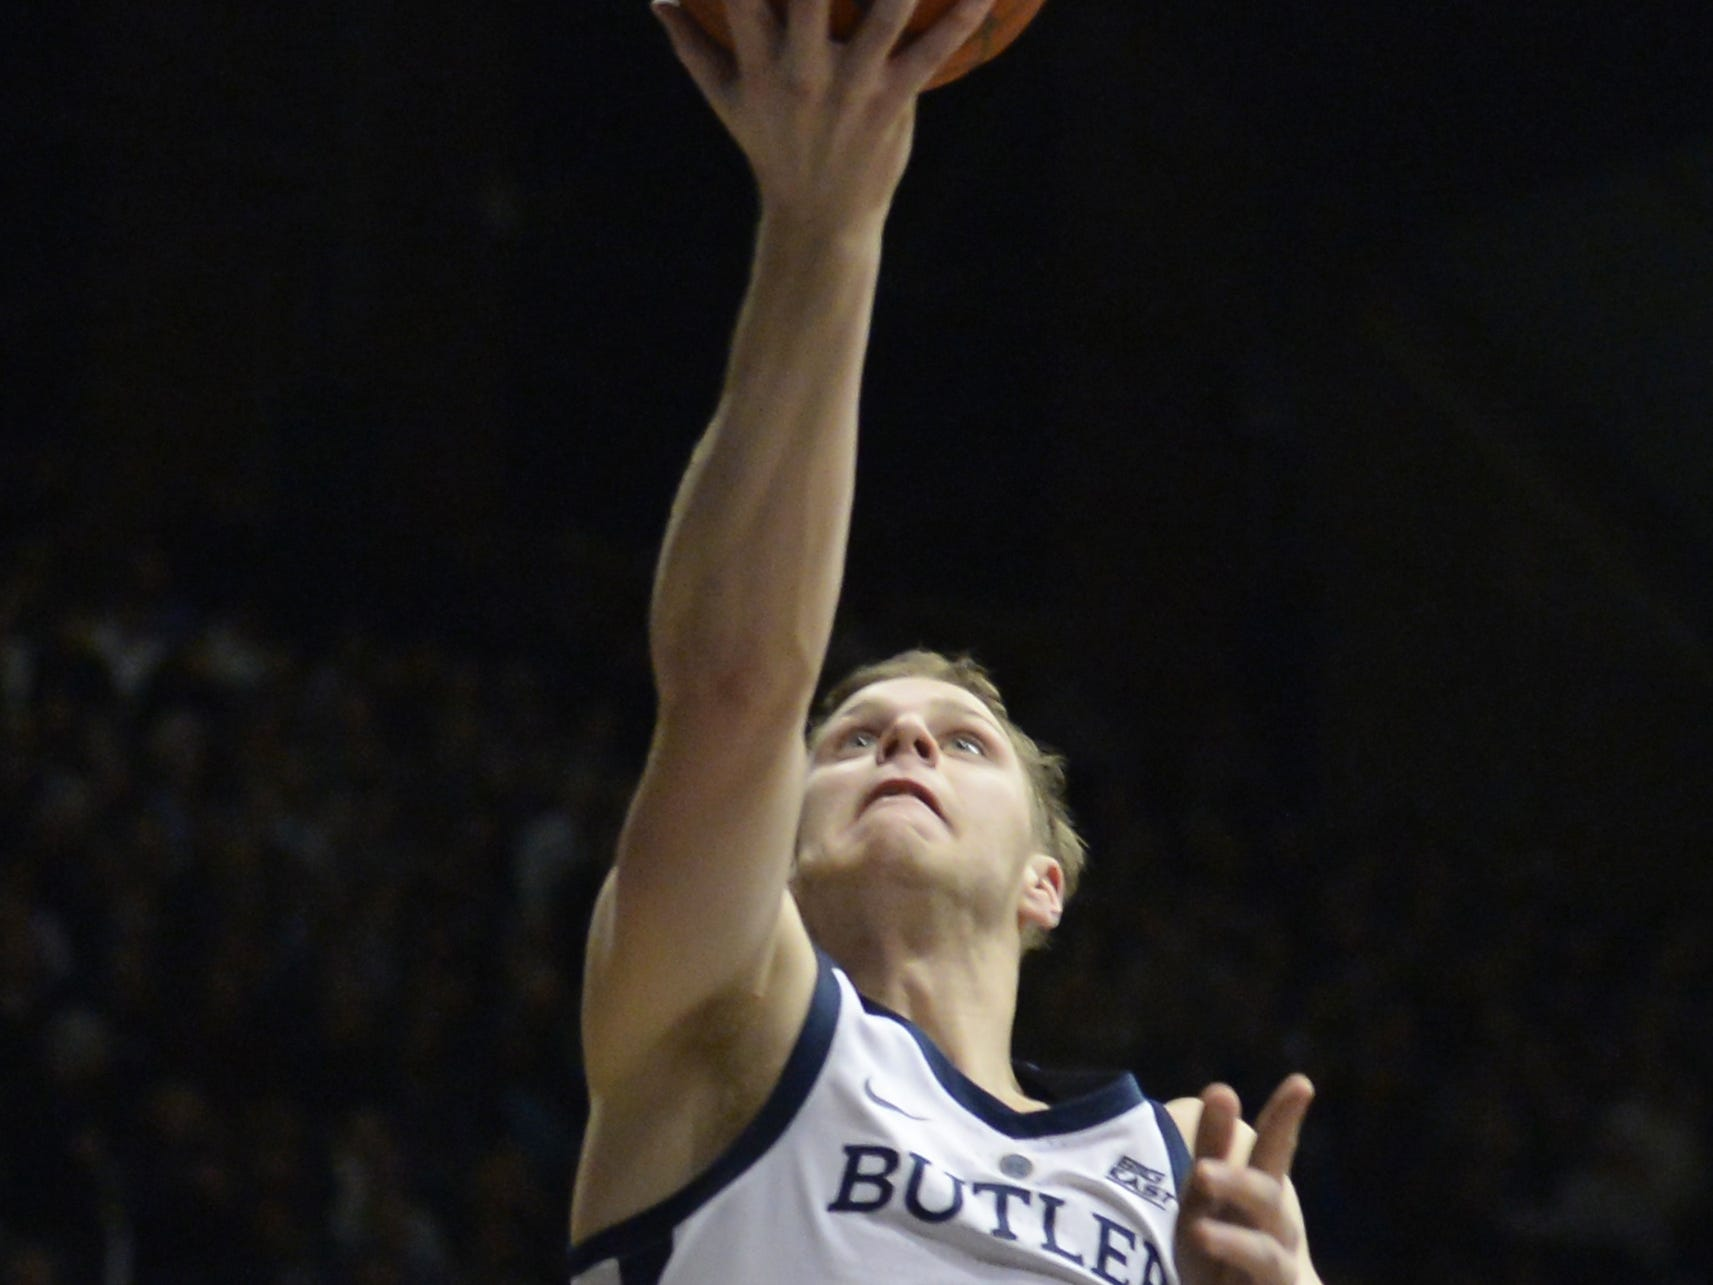 Butler Bulldogs guard Paul Jorgensen (5) puts the ball up during the first half of game action between Butler University and Georgetown University, at Hinkle Fieldhouse in Indianapolis, Indiana on Wednesday, Jan. 2, 2019. The Butler Bulldogs fell to the Georgetown Hoyas 84-76.